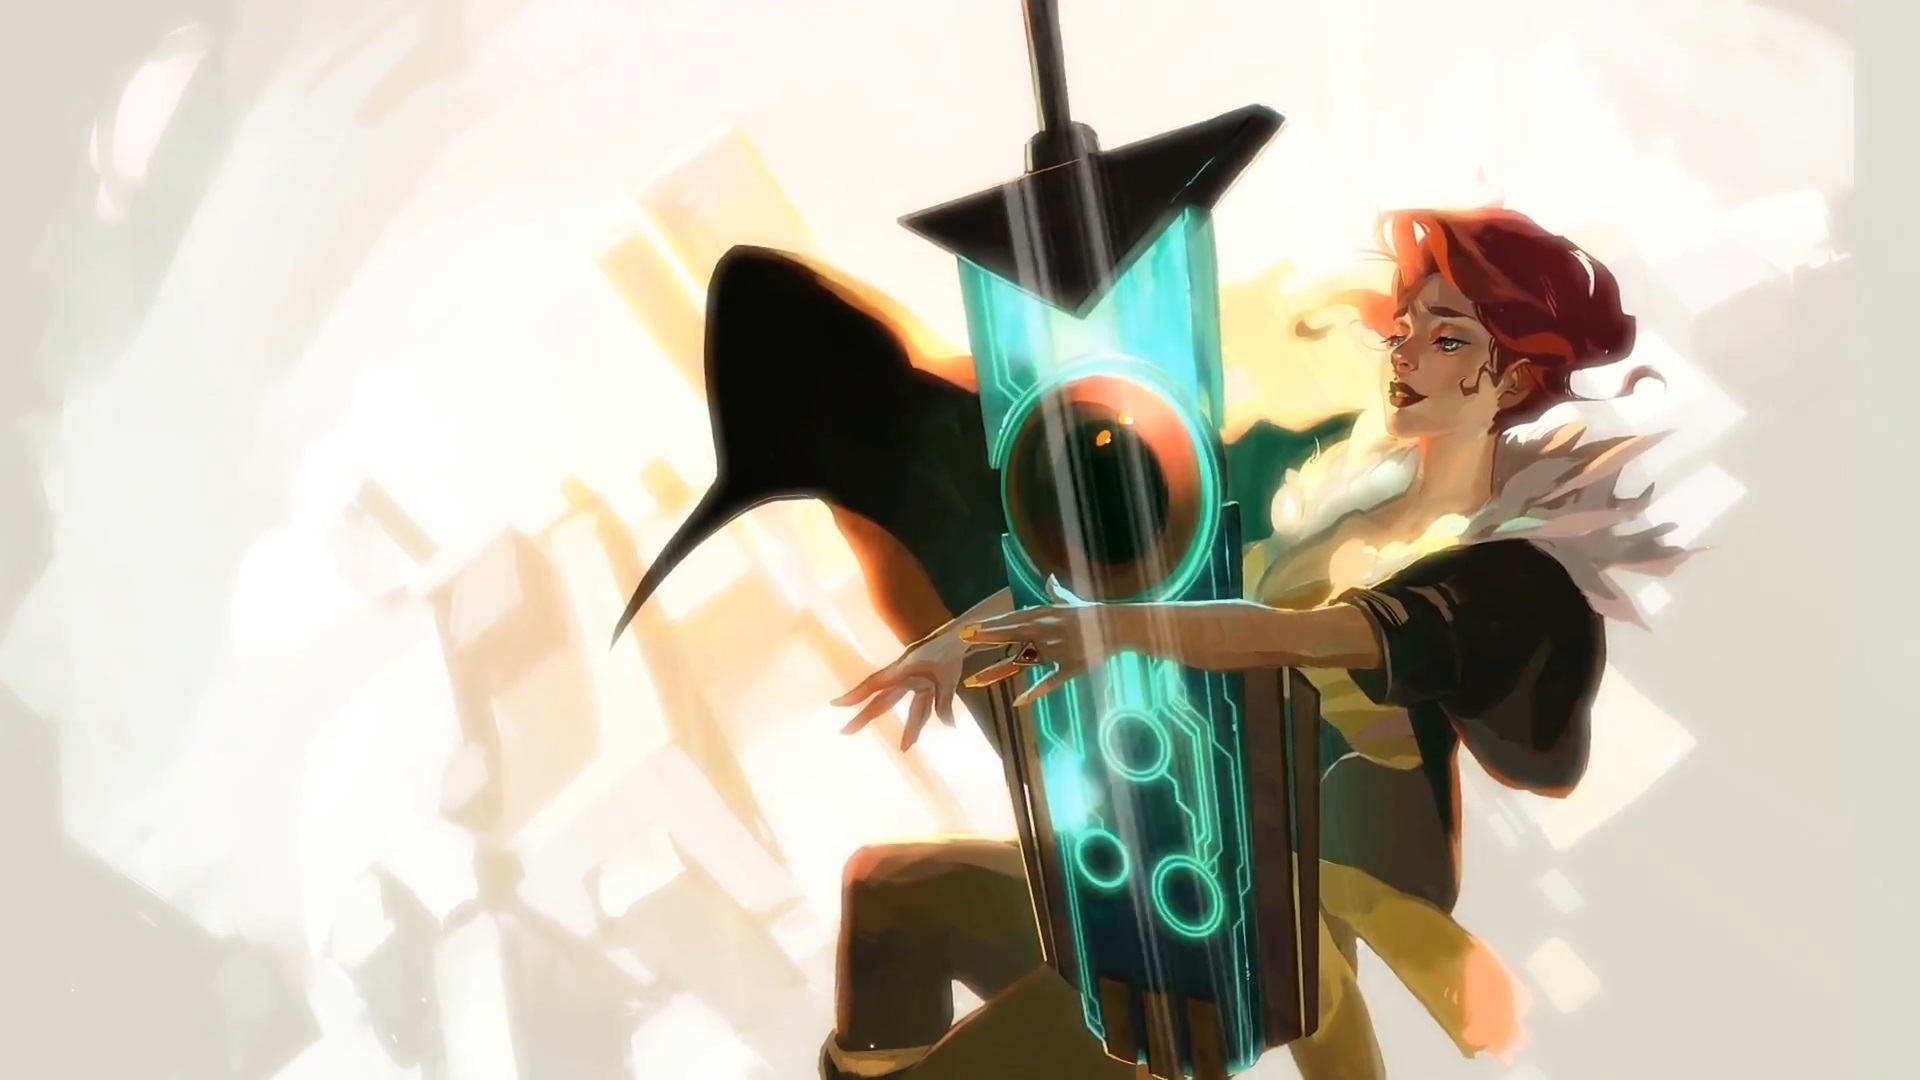 Transistor wallpaper Game wallpapers